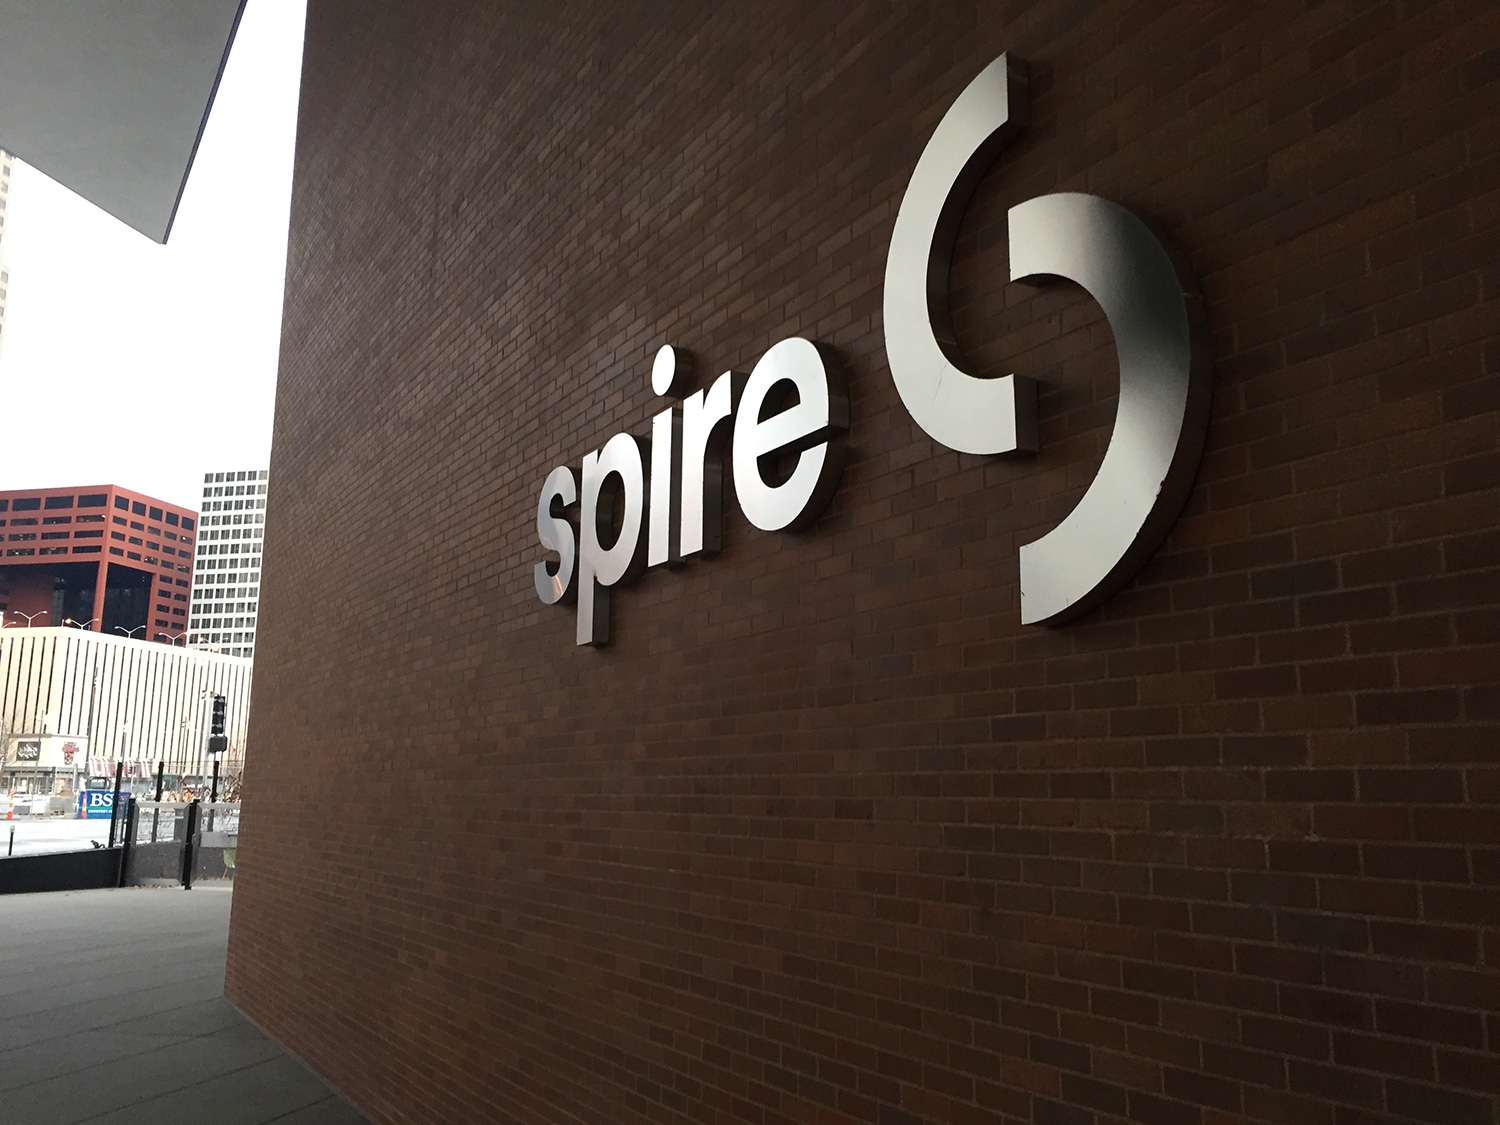 Spire Natural Gas Logo, Matthijs Matt van Leeuwen, Matt King, Mike Knaggs, Interbrand